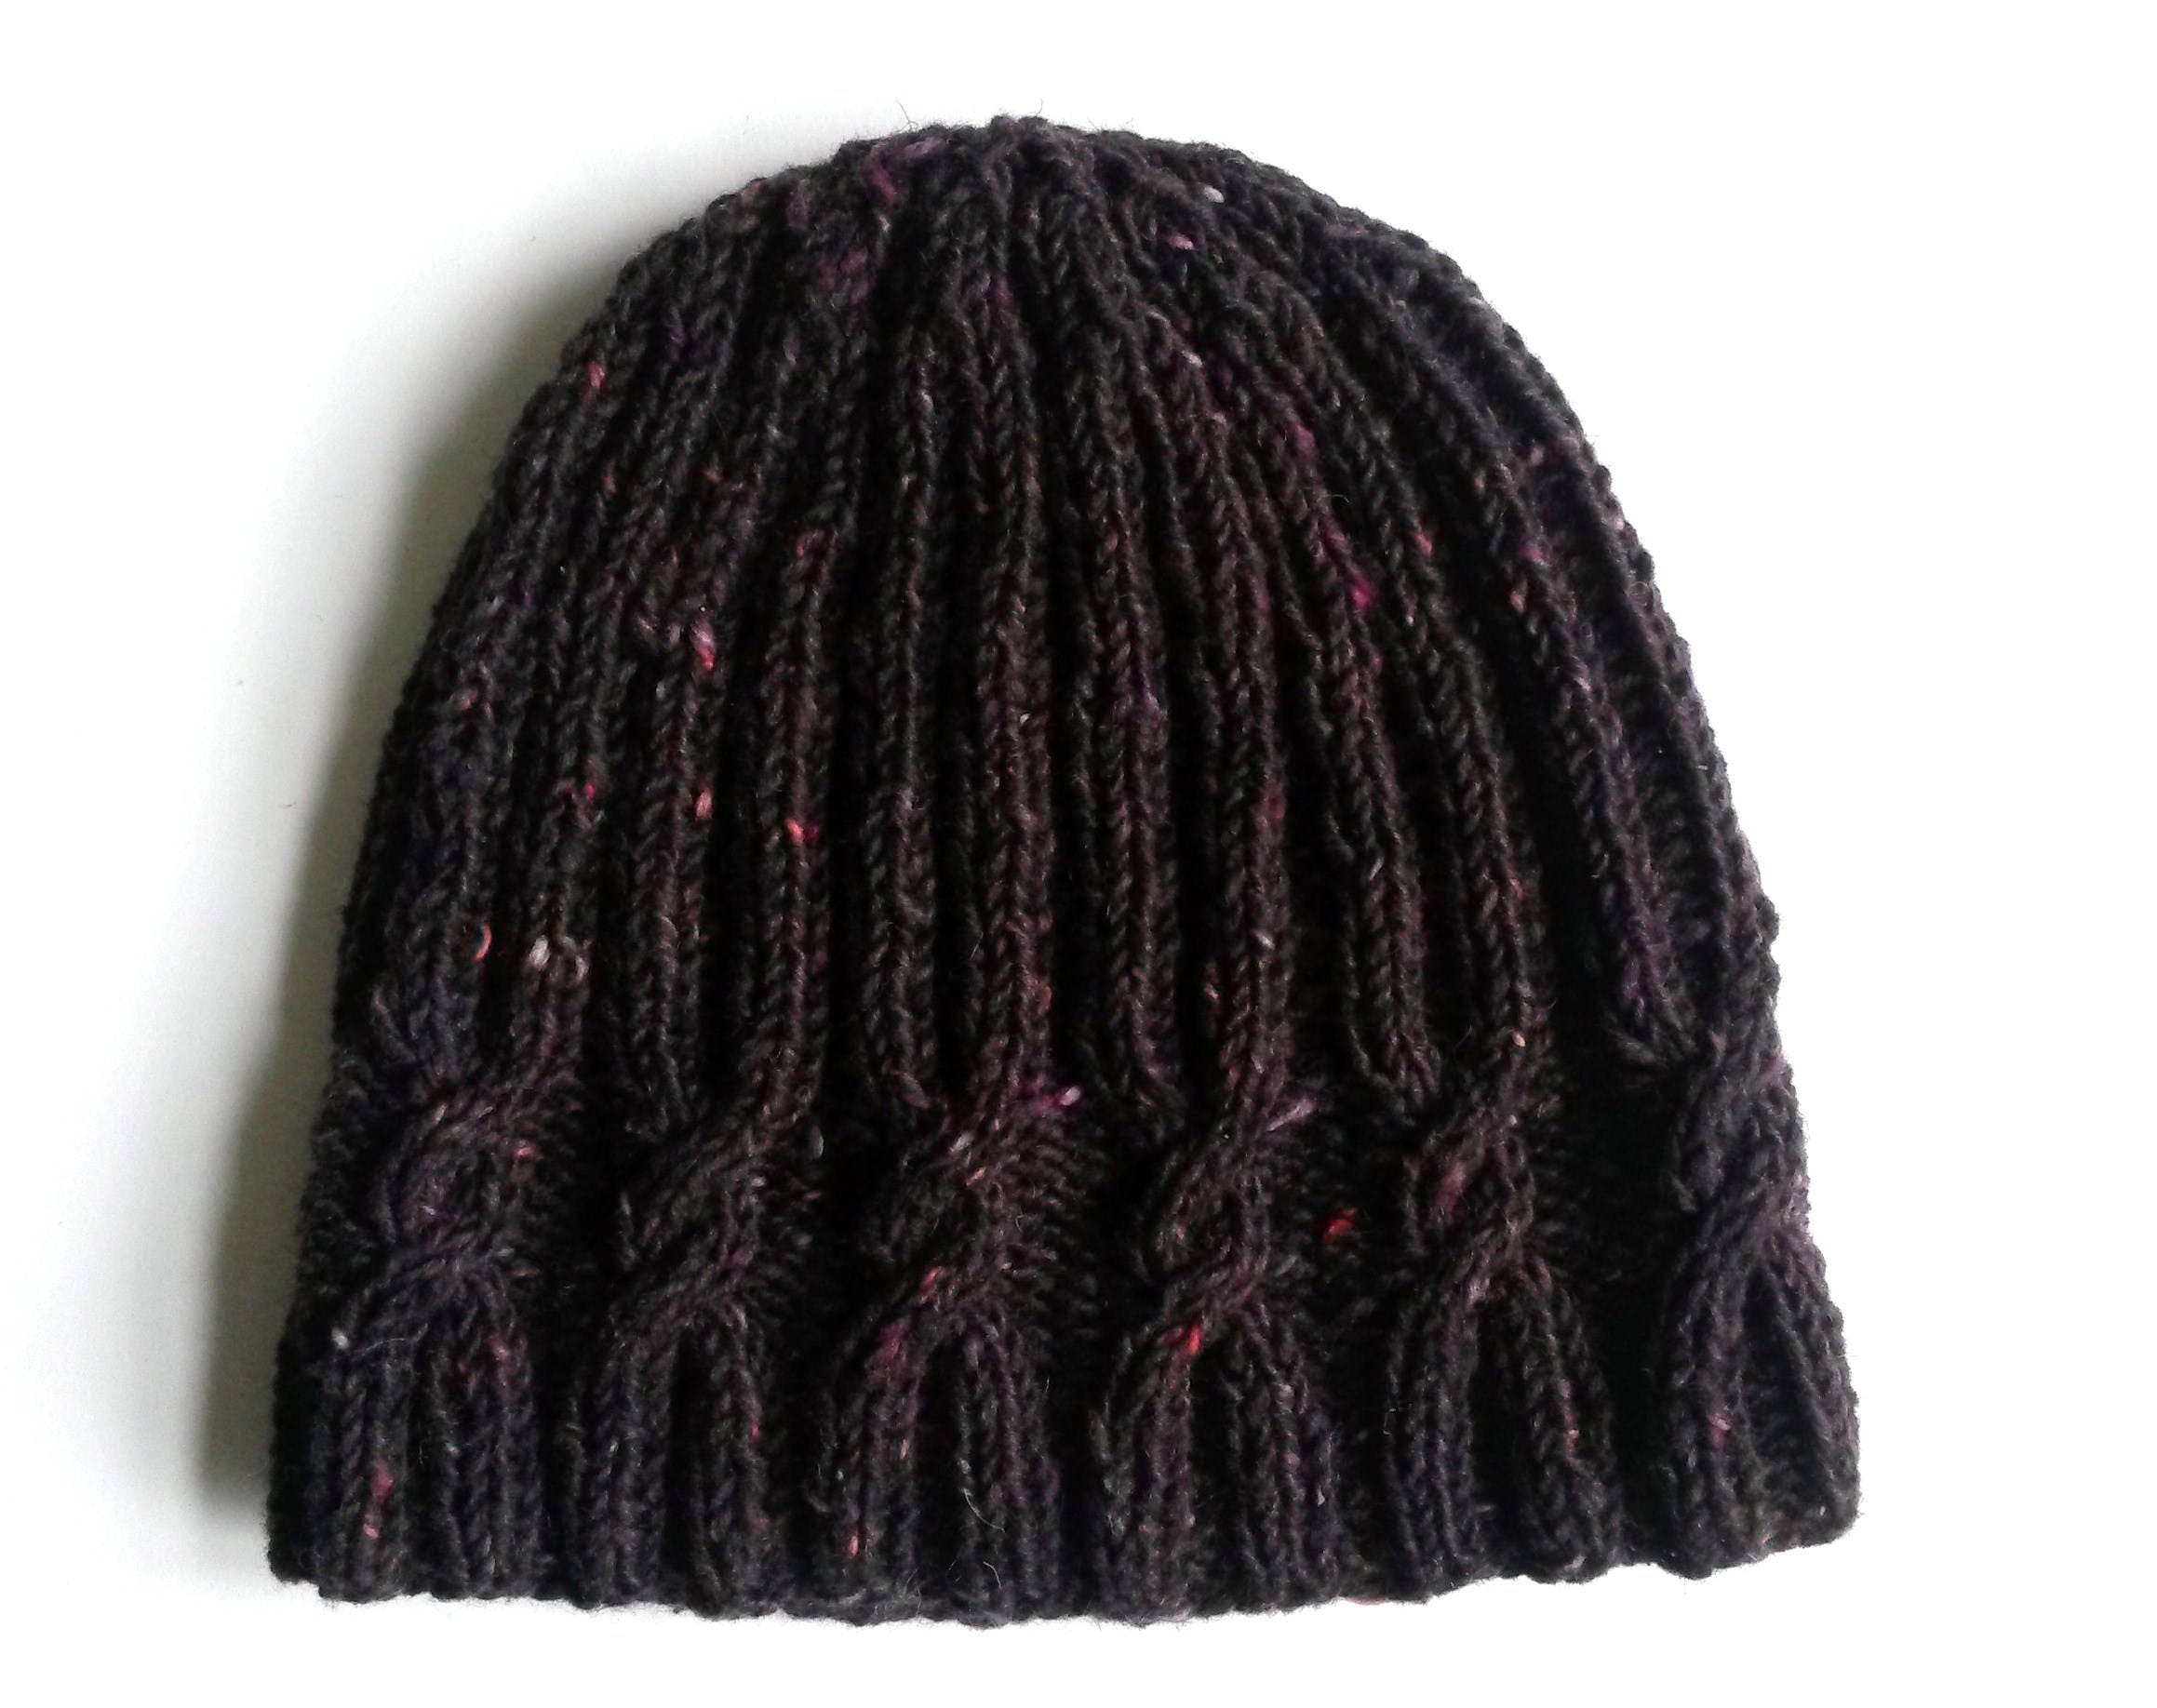 c65c81ac0224d Cable knit beanie in luxury purple black tweed Irish wool. Handknit hat ...